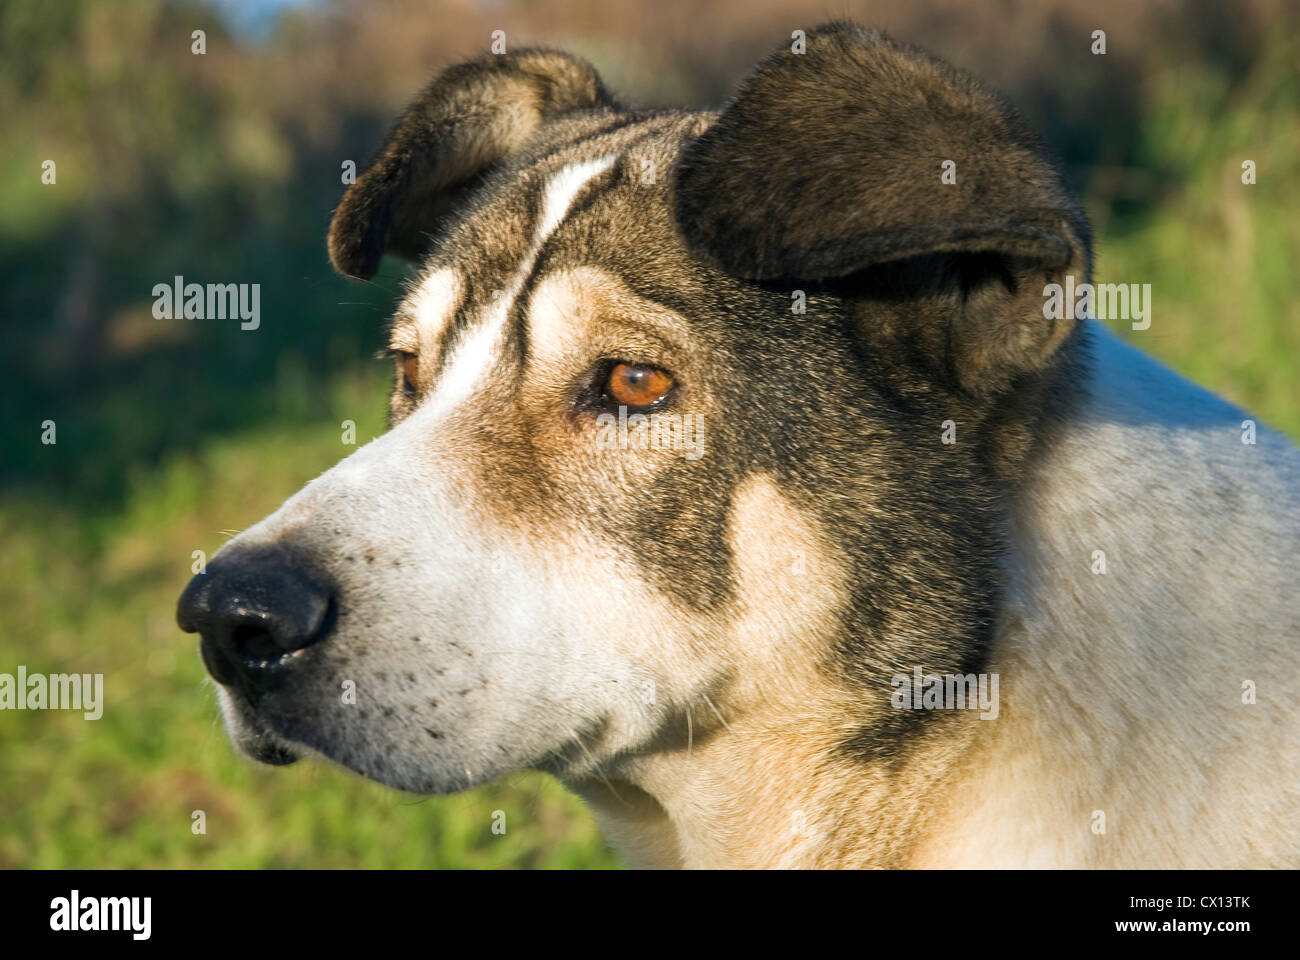 A black and white mongrel dog in profile - Stock Image